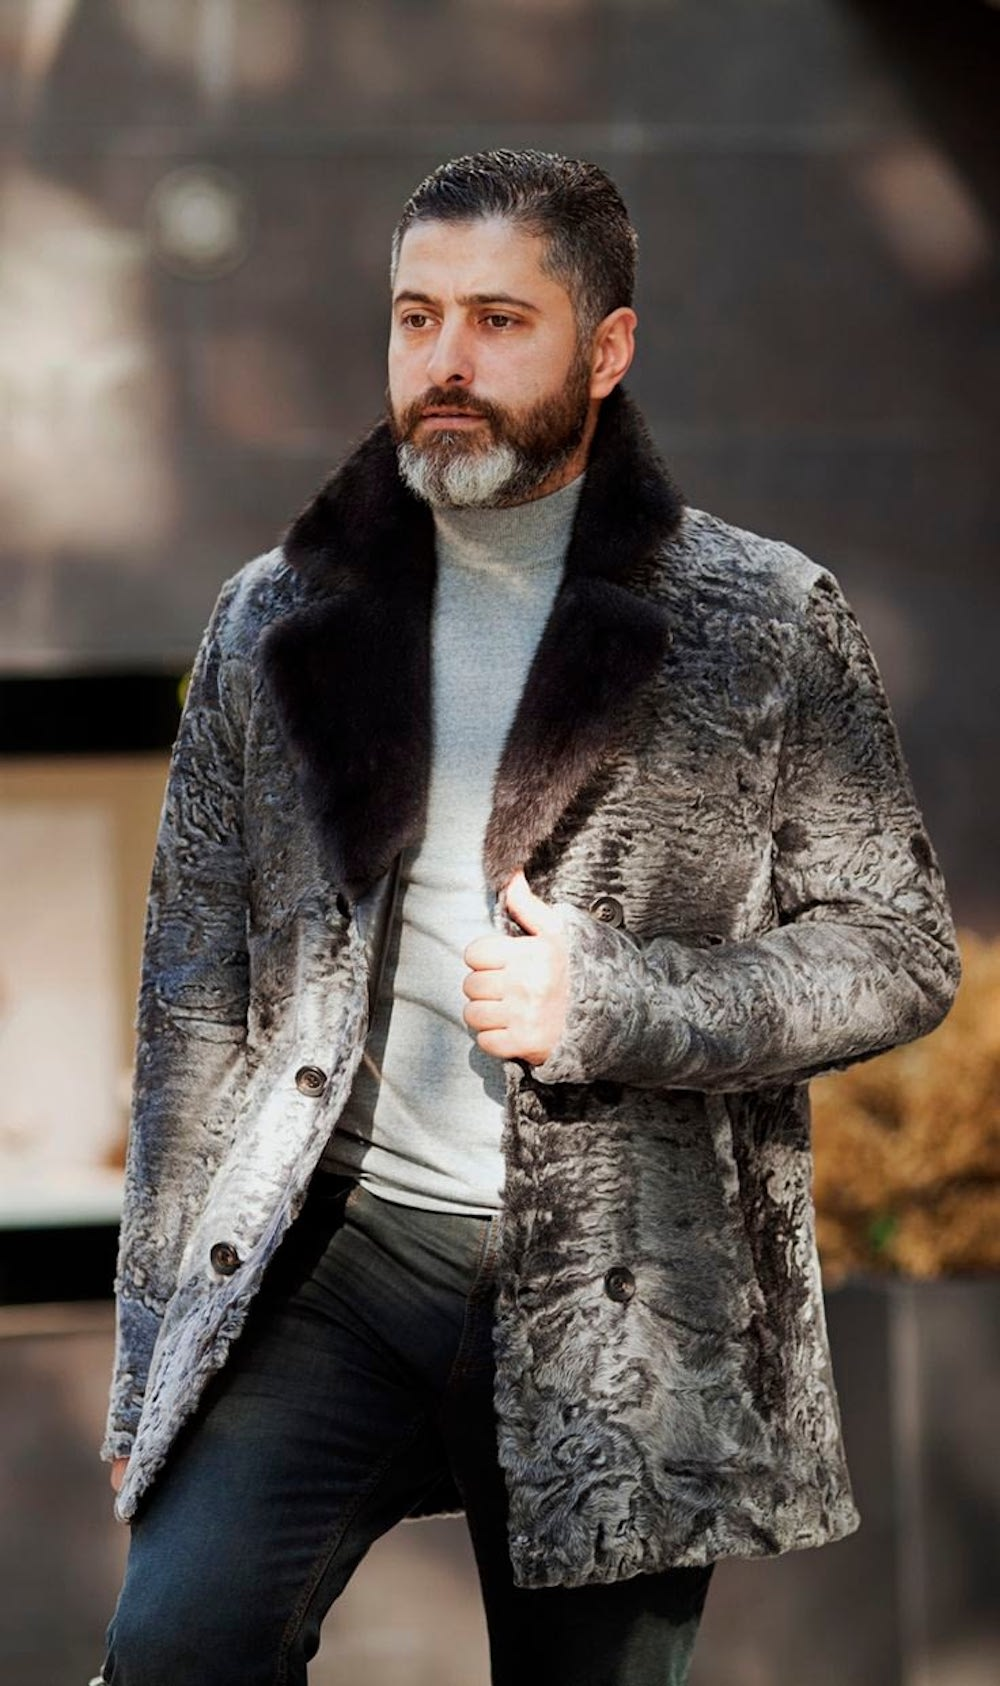 The perfect example of a dandy's fur coat look